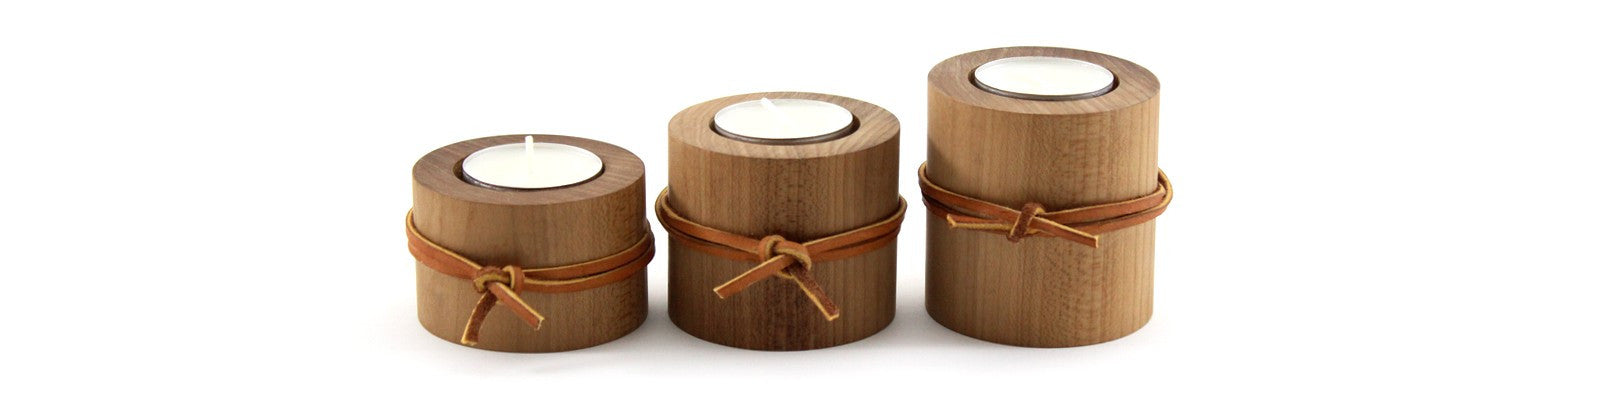 3-Piece Tea Light Candle Holders